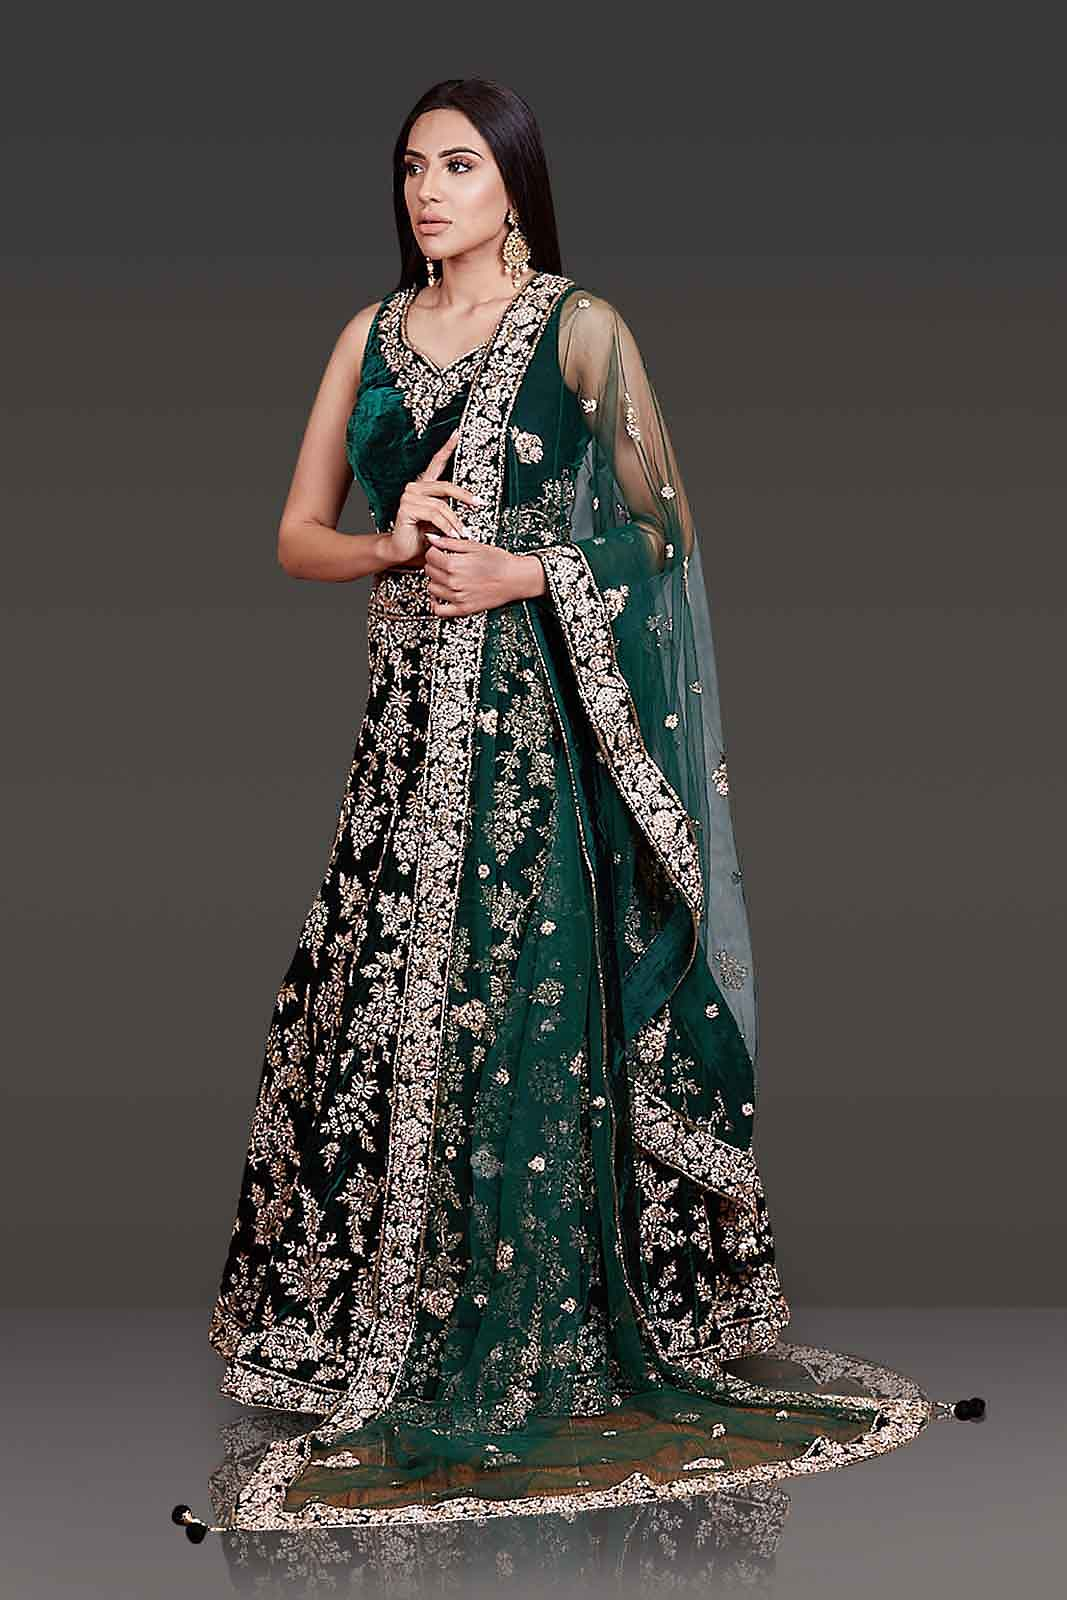 Bottle-Green Micro-Velvet Bridal Lehenga with Gold Zardozi top and Stone Embroidery